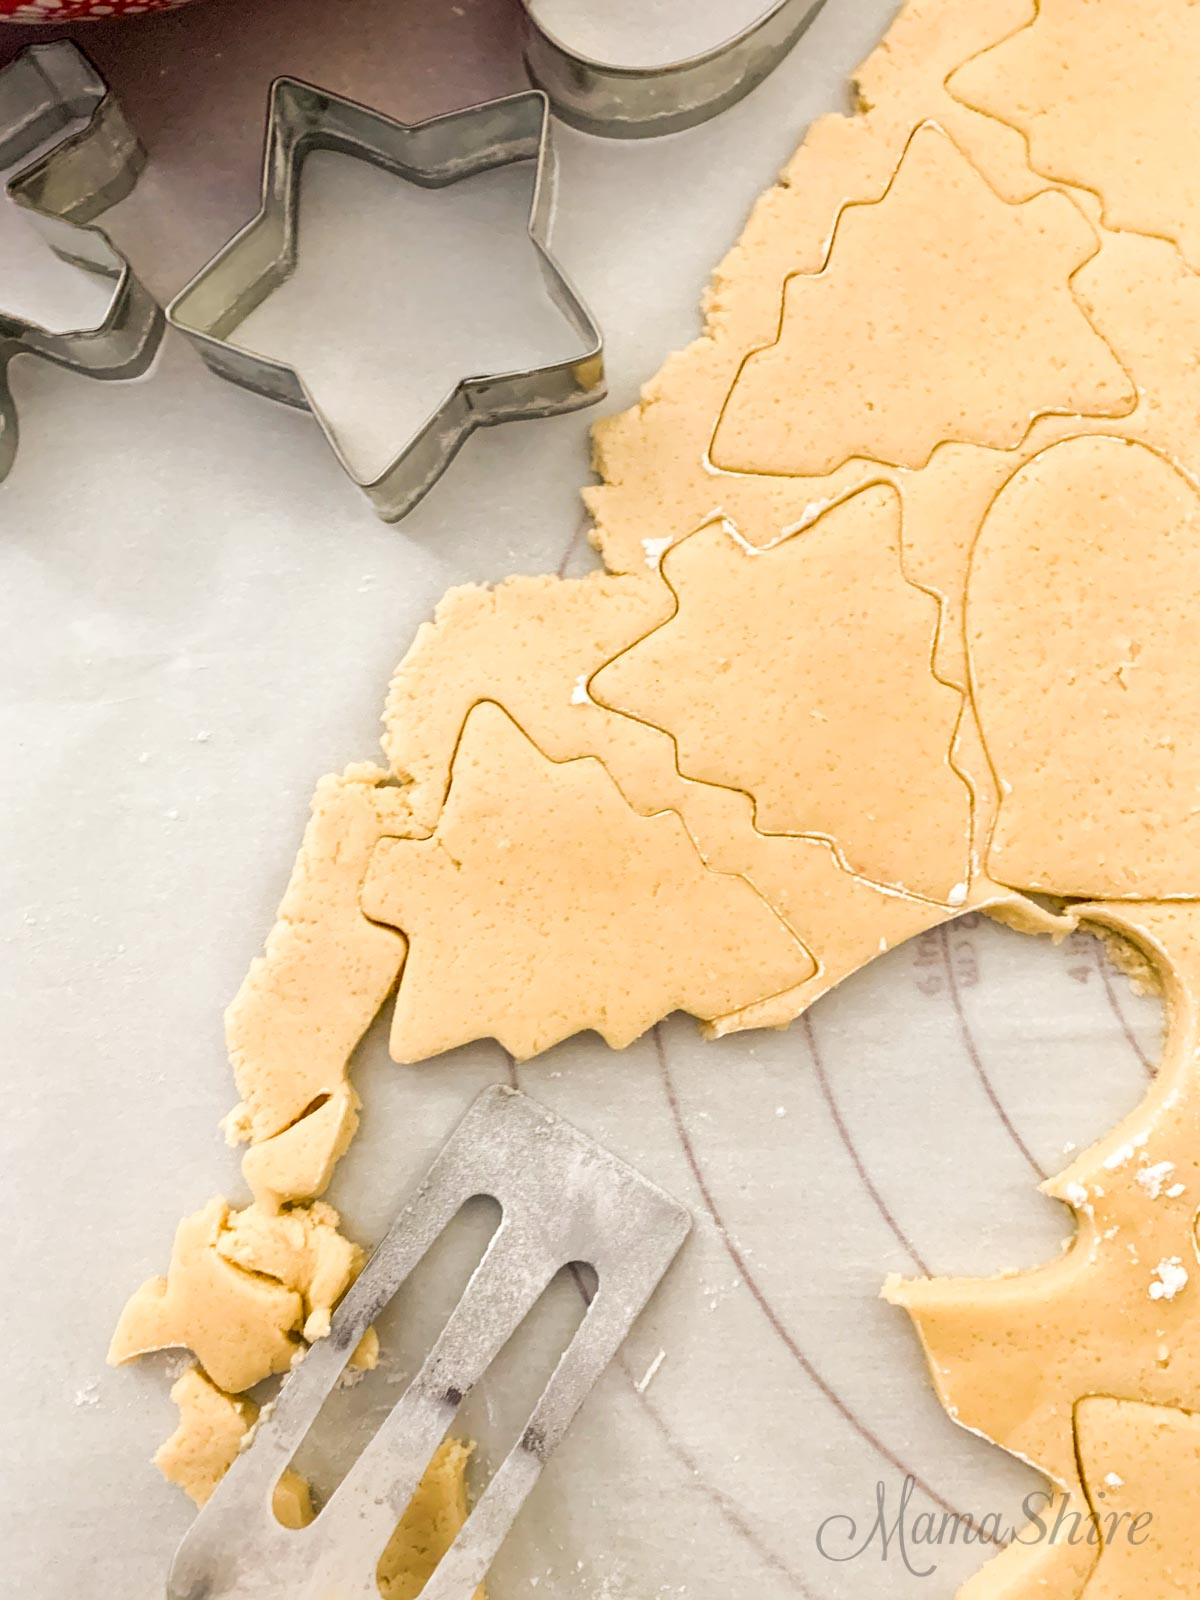 Use a spatula dipped in flour to move cookie dough to the baking pan.